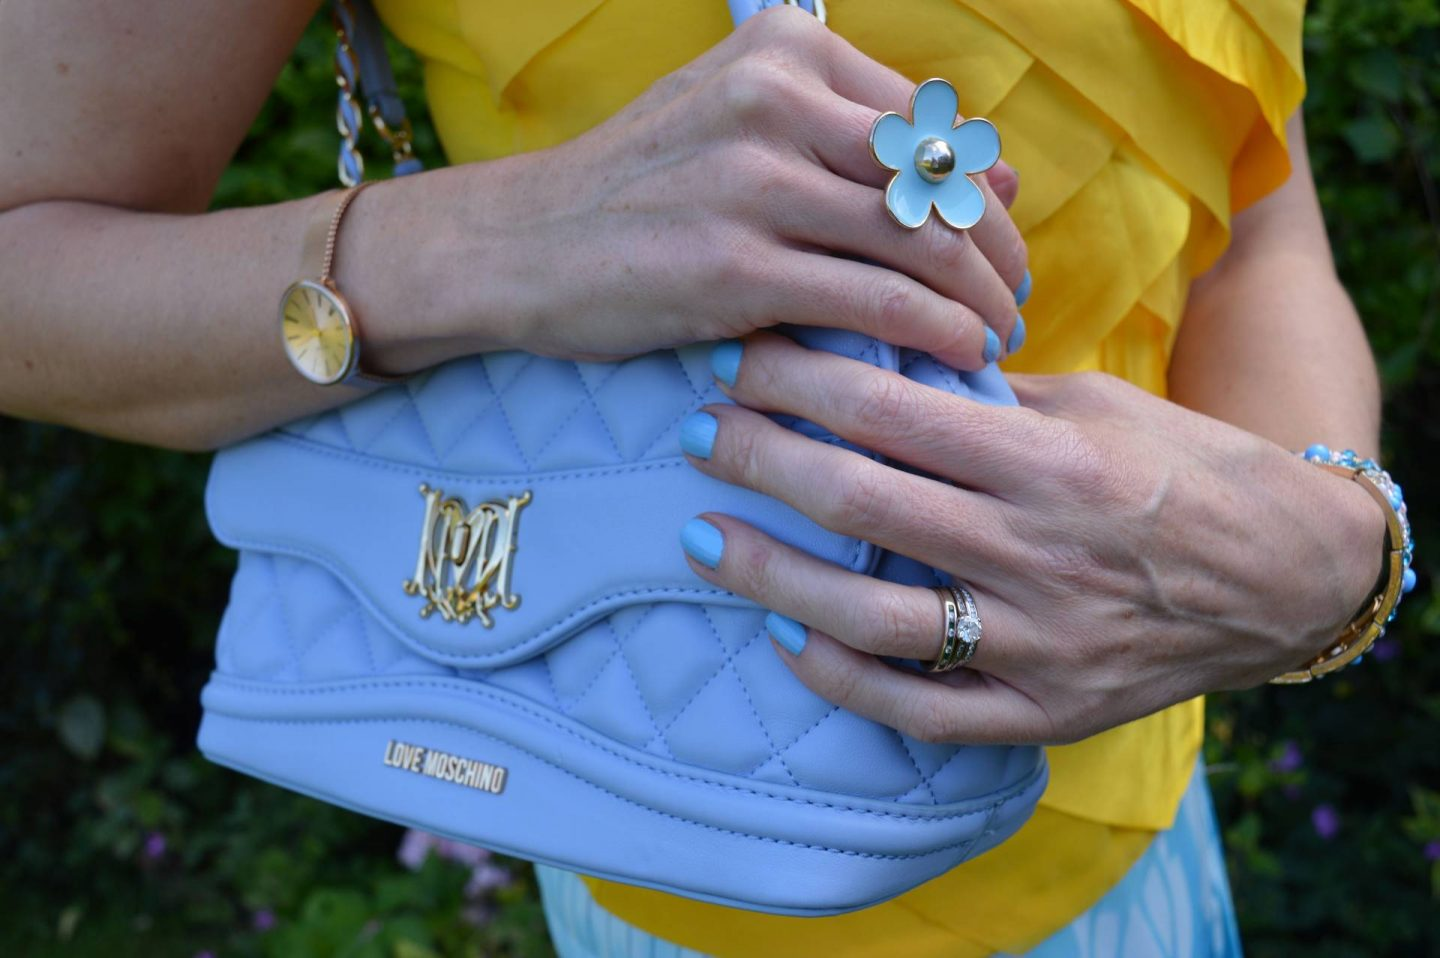 Match Made in Seven: California Dreaming, Principles by Ben de Lisi yellow top, Love Moschino pale blue bag